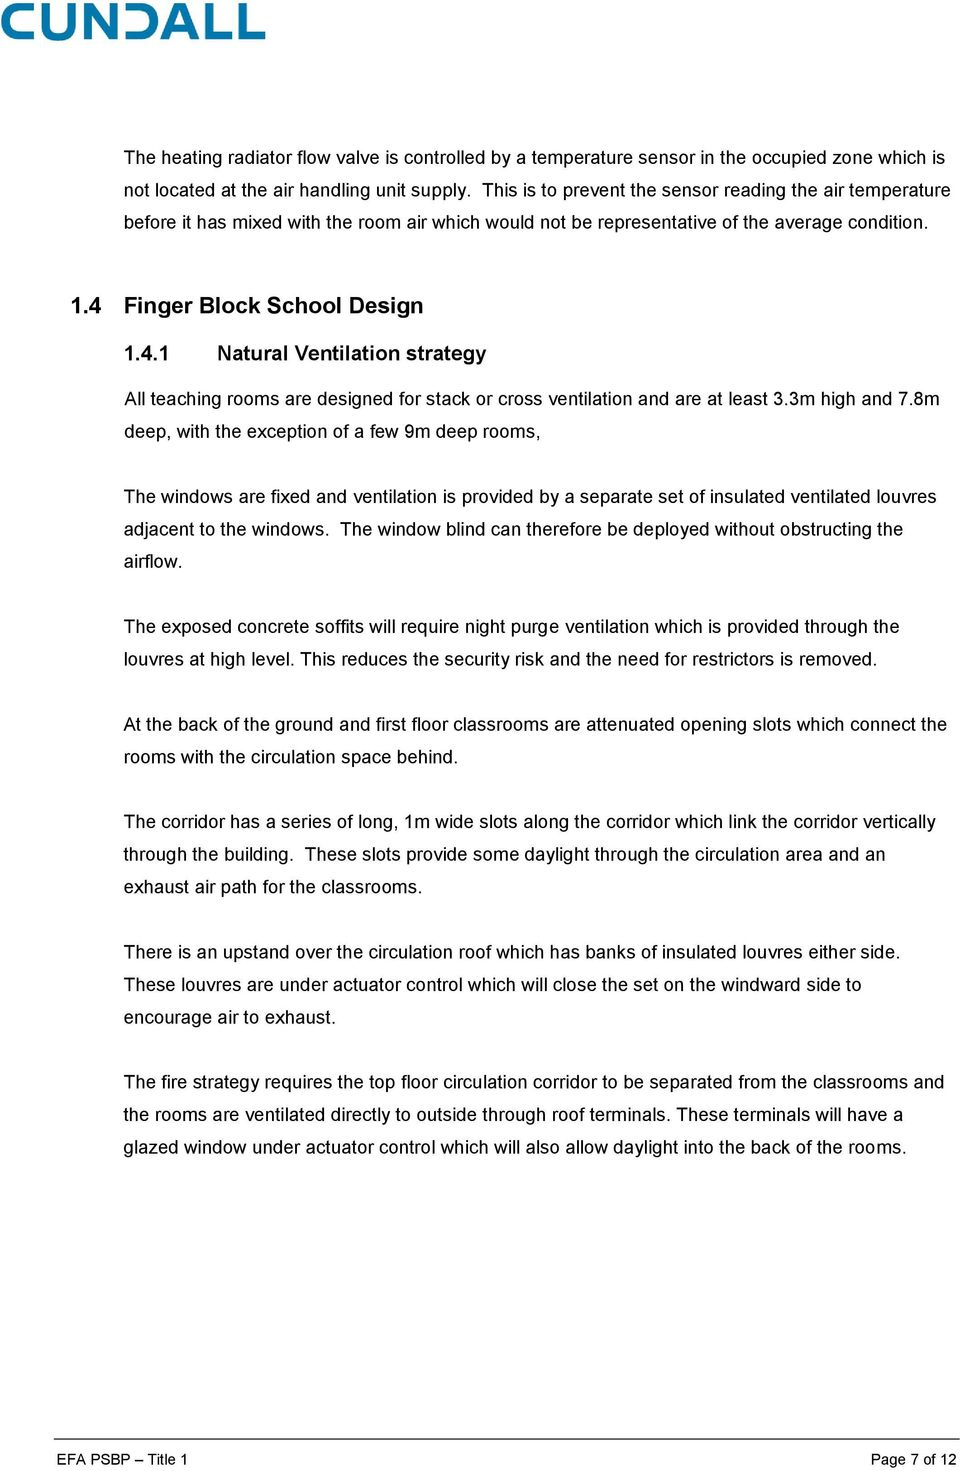 Finger Block School Design 1.4.1 Natural Ventilation strategy All teaching rooms are designed for stack or cross ventilation and are at least 3.3m high and 7.